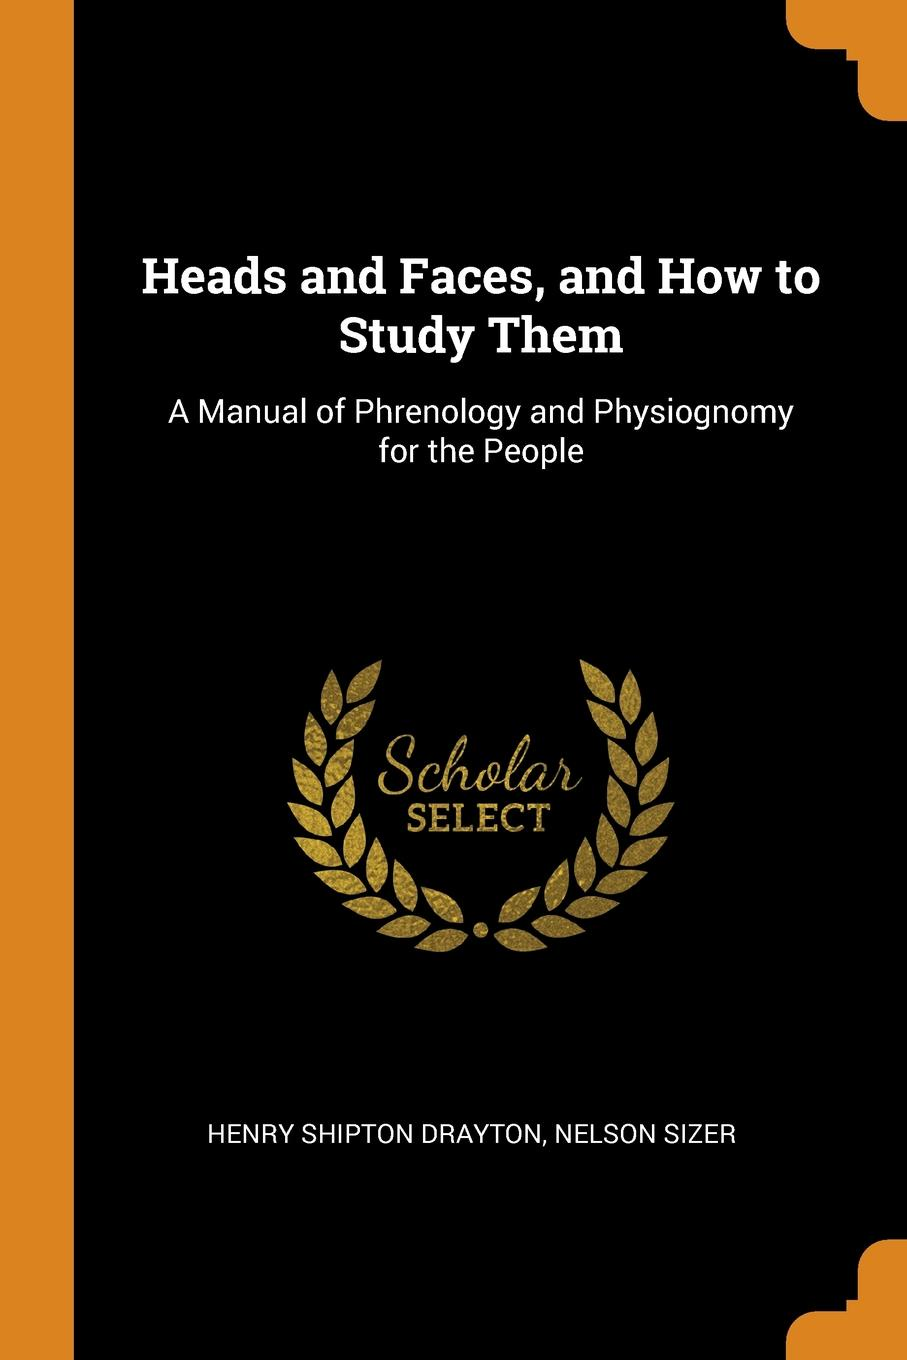 Henry Shipton Drayton, Nelson Sizer. Heads and Faces, and How to Study Them. A Manual of Phrenology and Physiognomy for the People